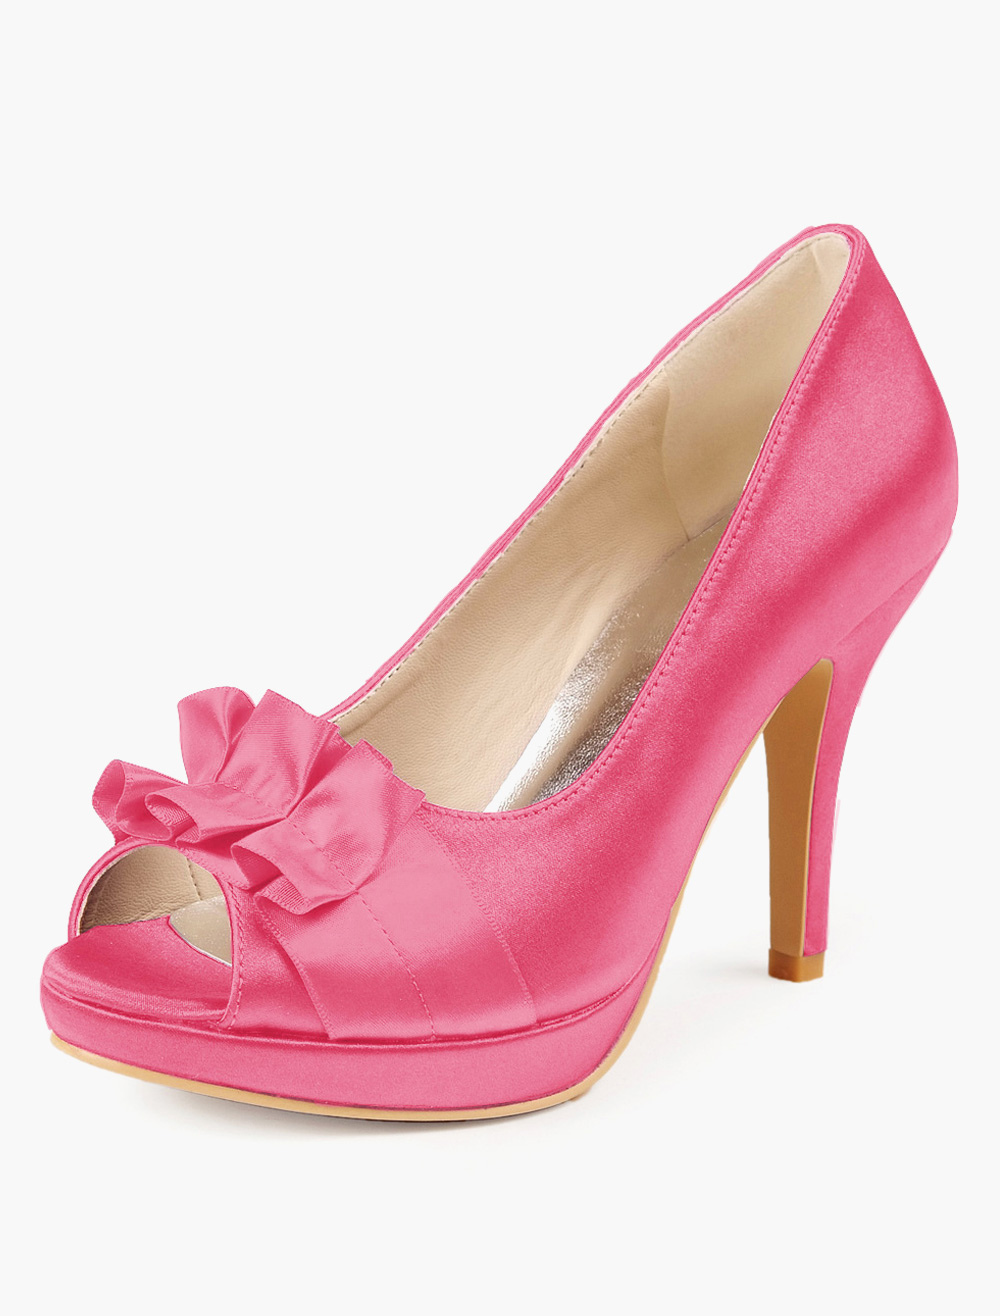 Bow Decor Peep Toe Silk And Satin Bridal Pumps